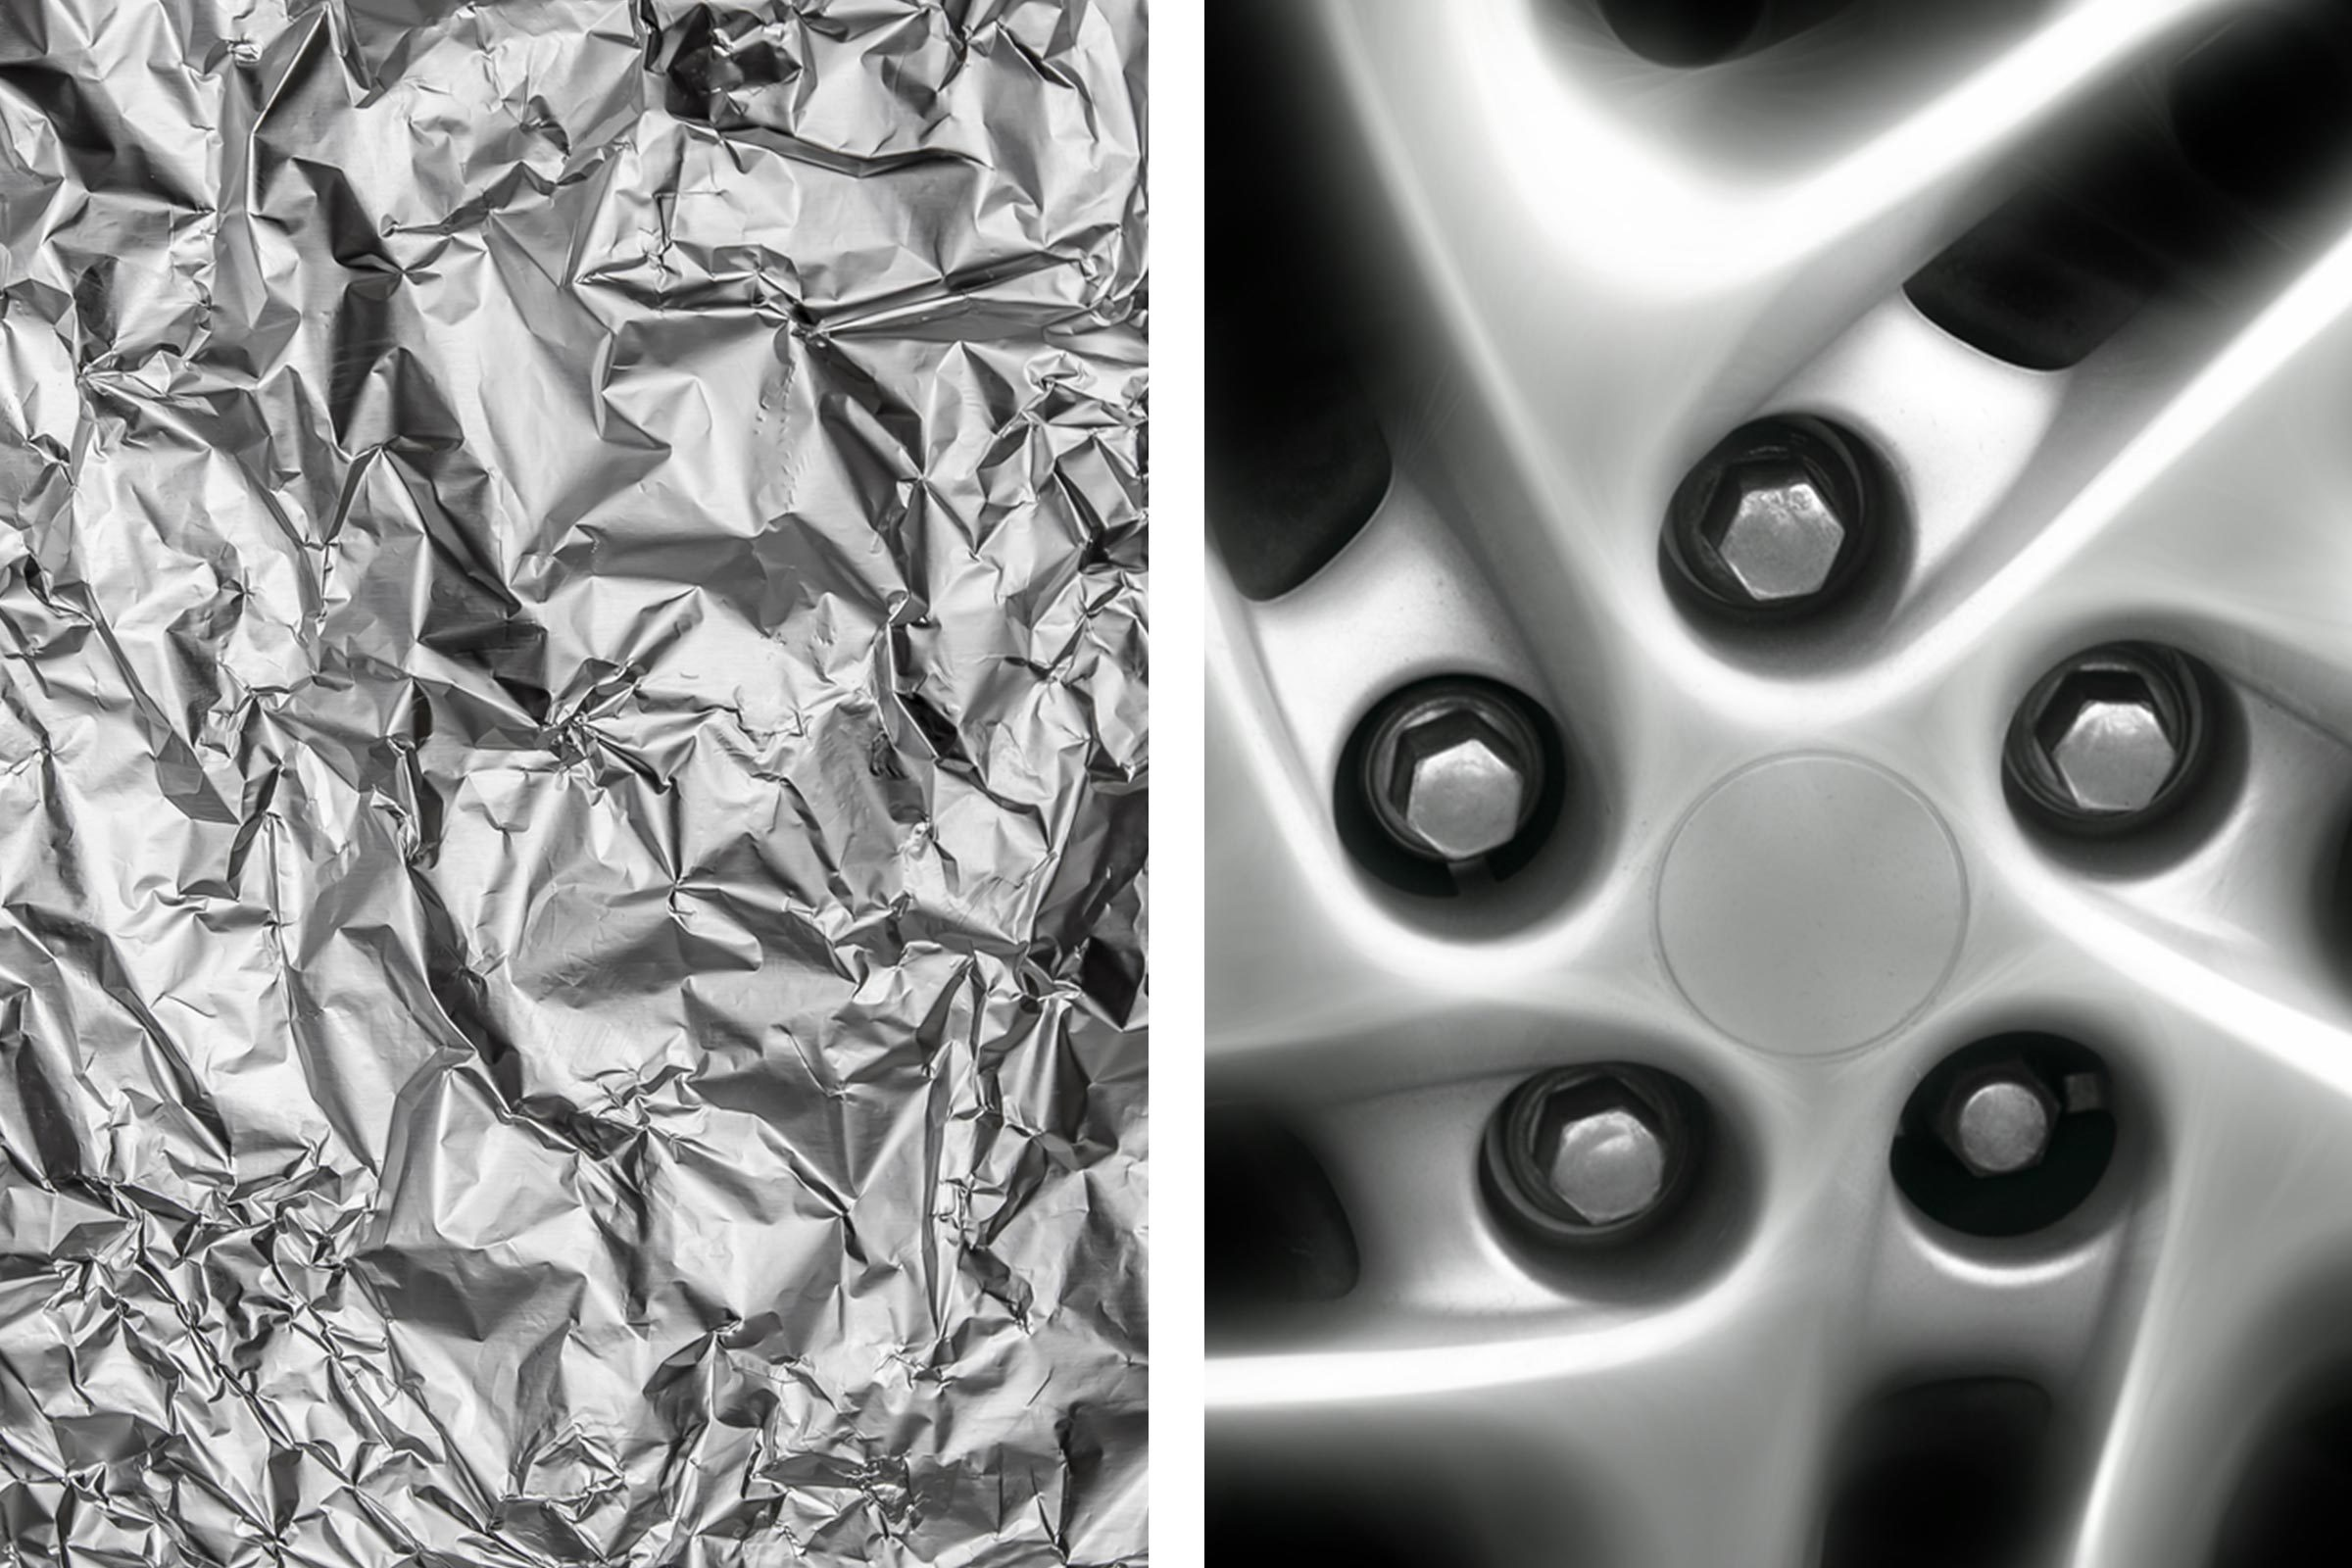 Aluminum Foil Uses You Didn't Know About | Reader's Digest